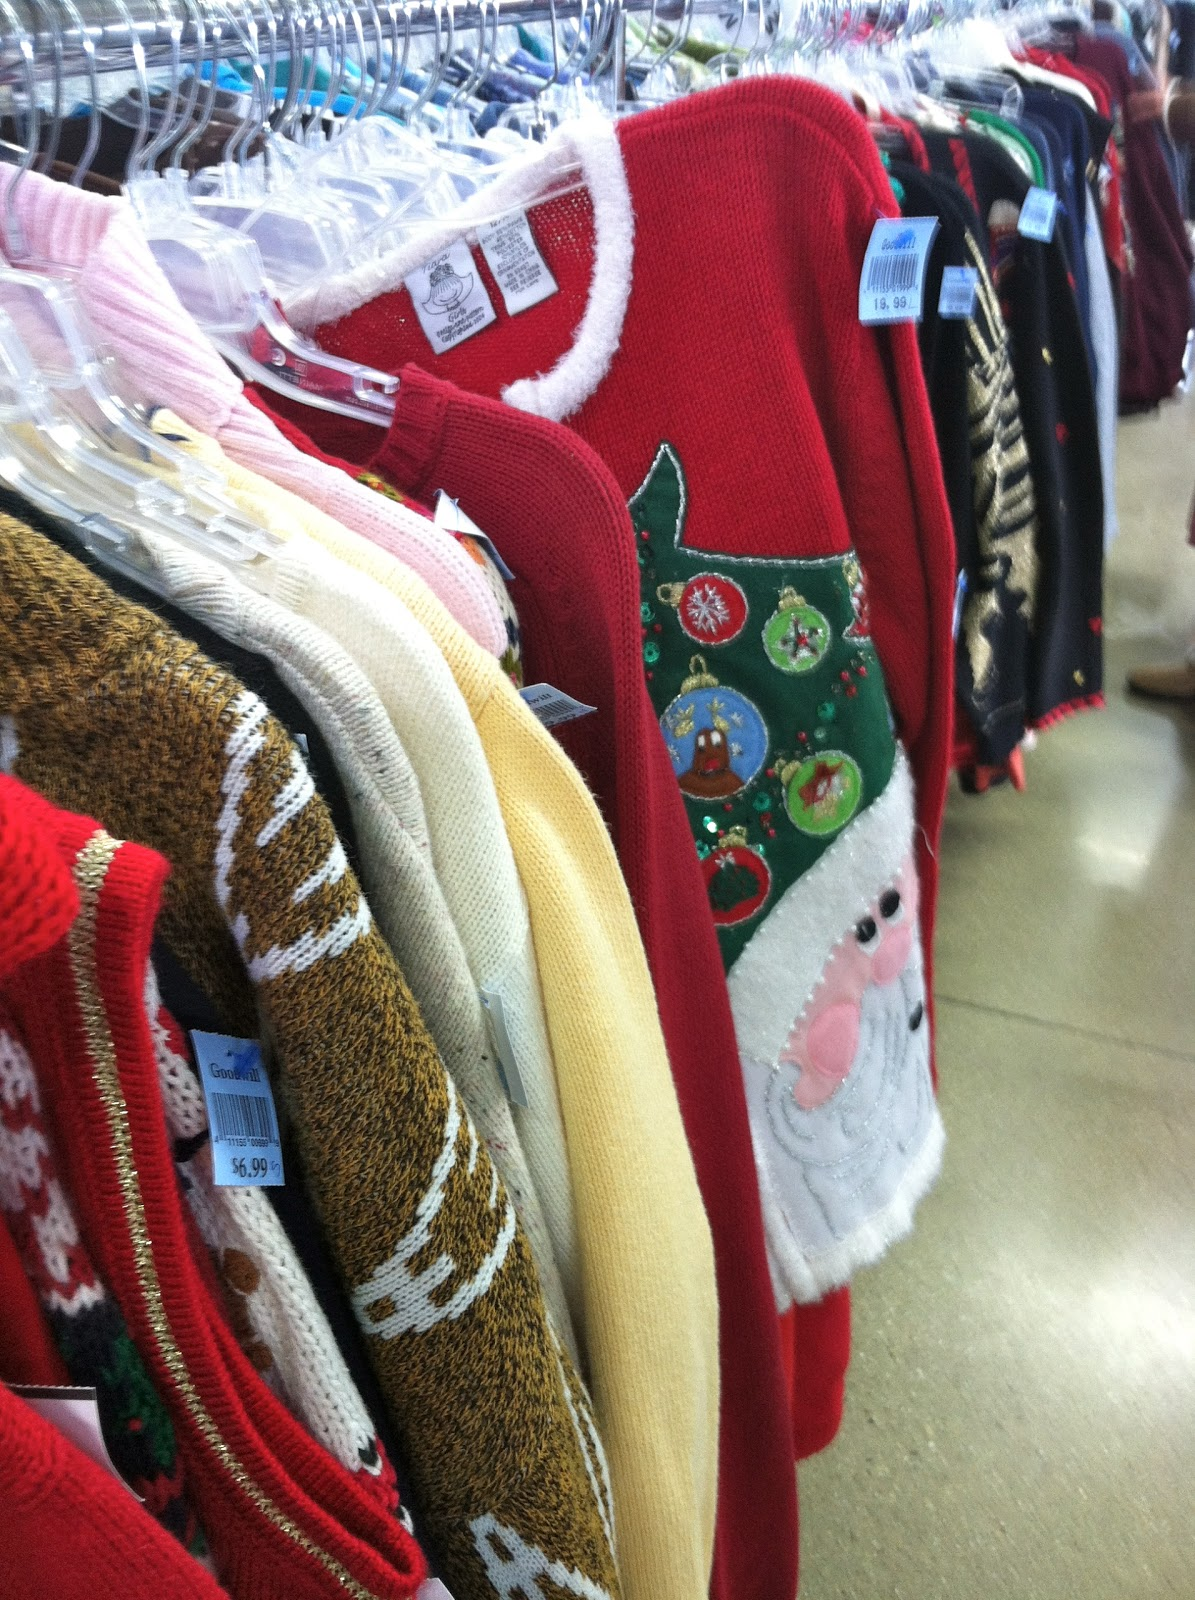 Cheerful Thrifty Door: Holiday Sweaters at the Thrift Store.